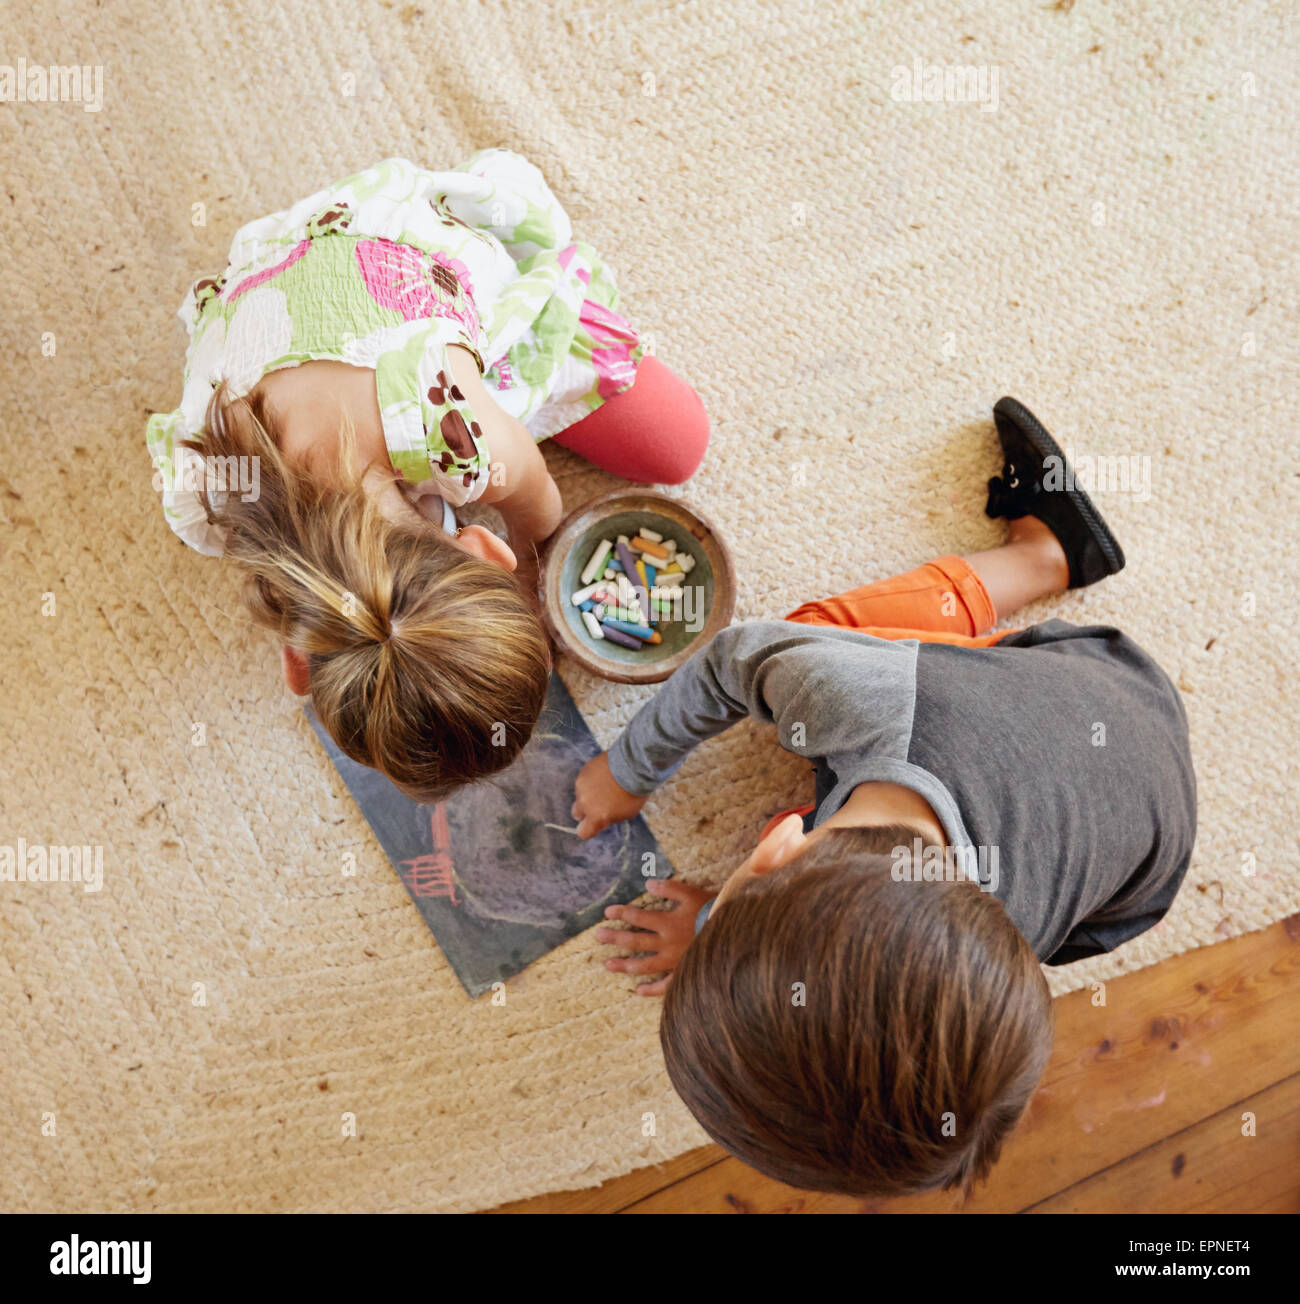 Top view of two little kids sitting on floor drawing with color chalks. - Stock Image